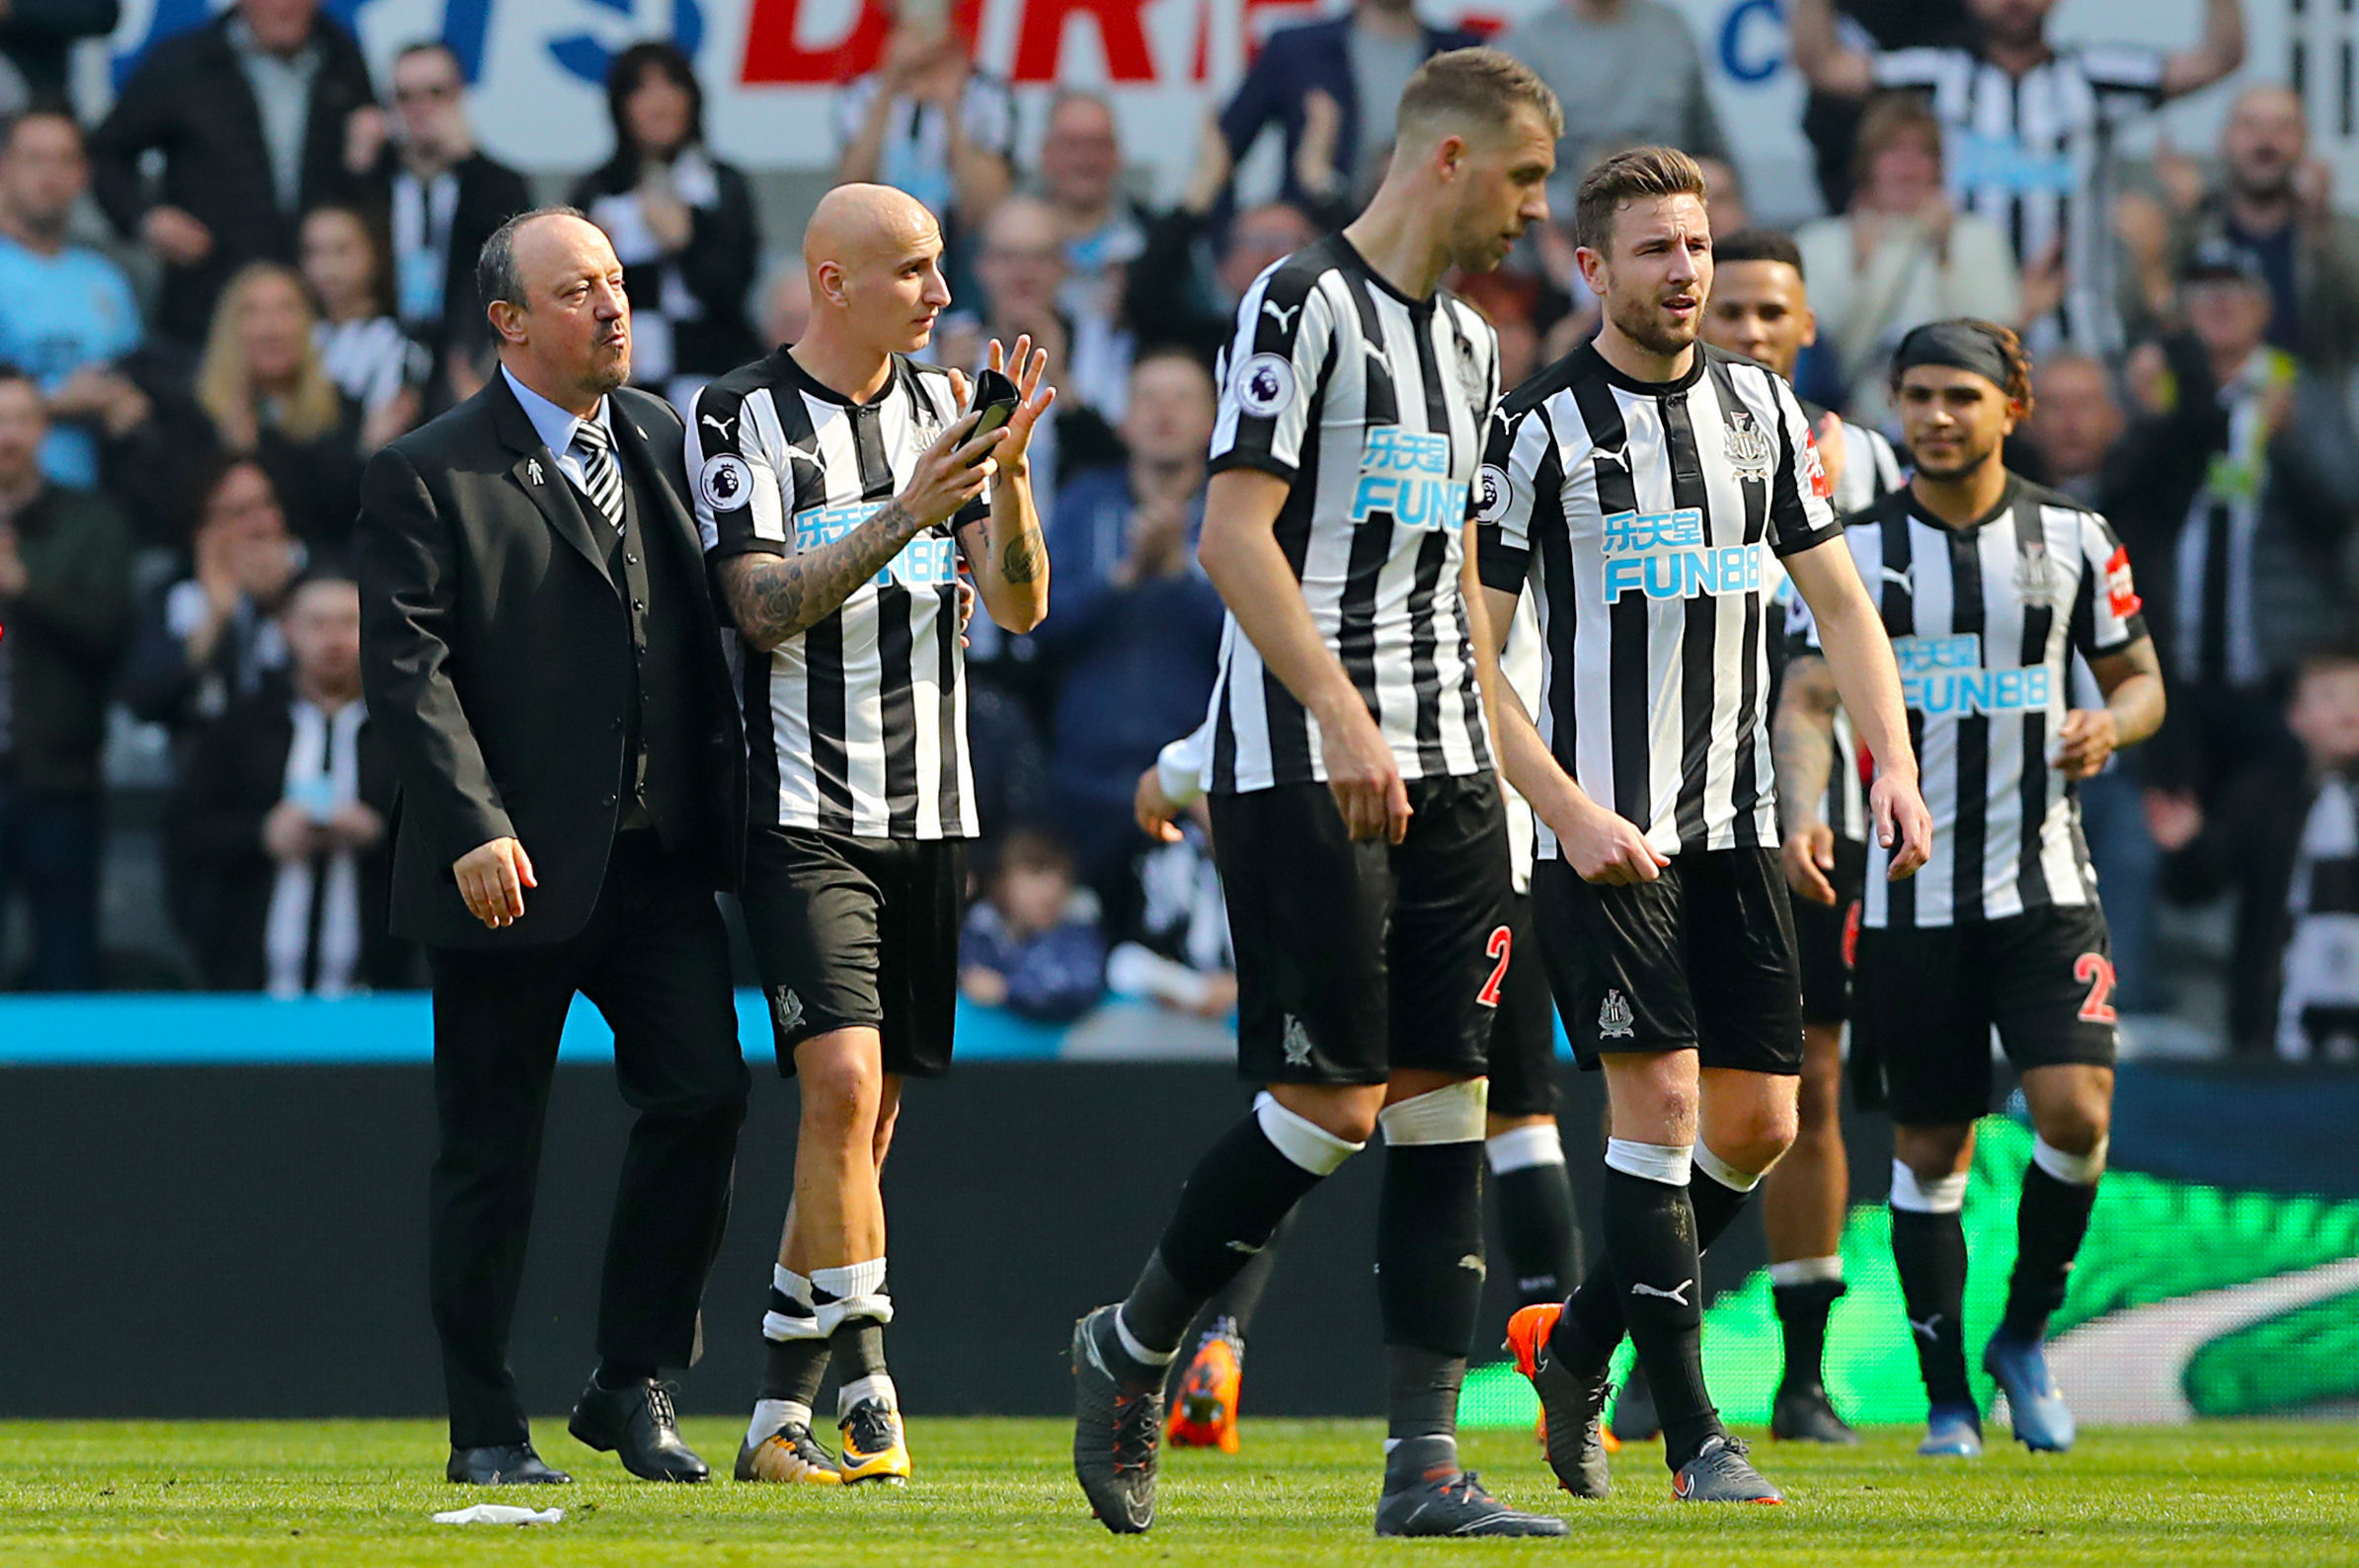 ALL SMILES: Rafael Benitez celebrates with his Newcastle players in the wake of today's 2-1 win over Arsenal (Picture: Owen Humphreys/PA Wire)